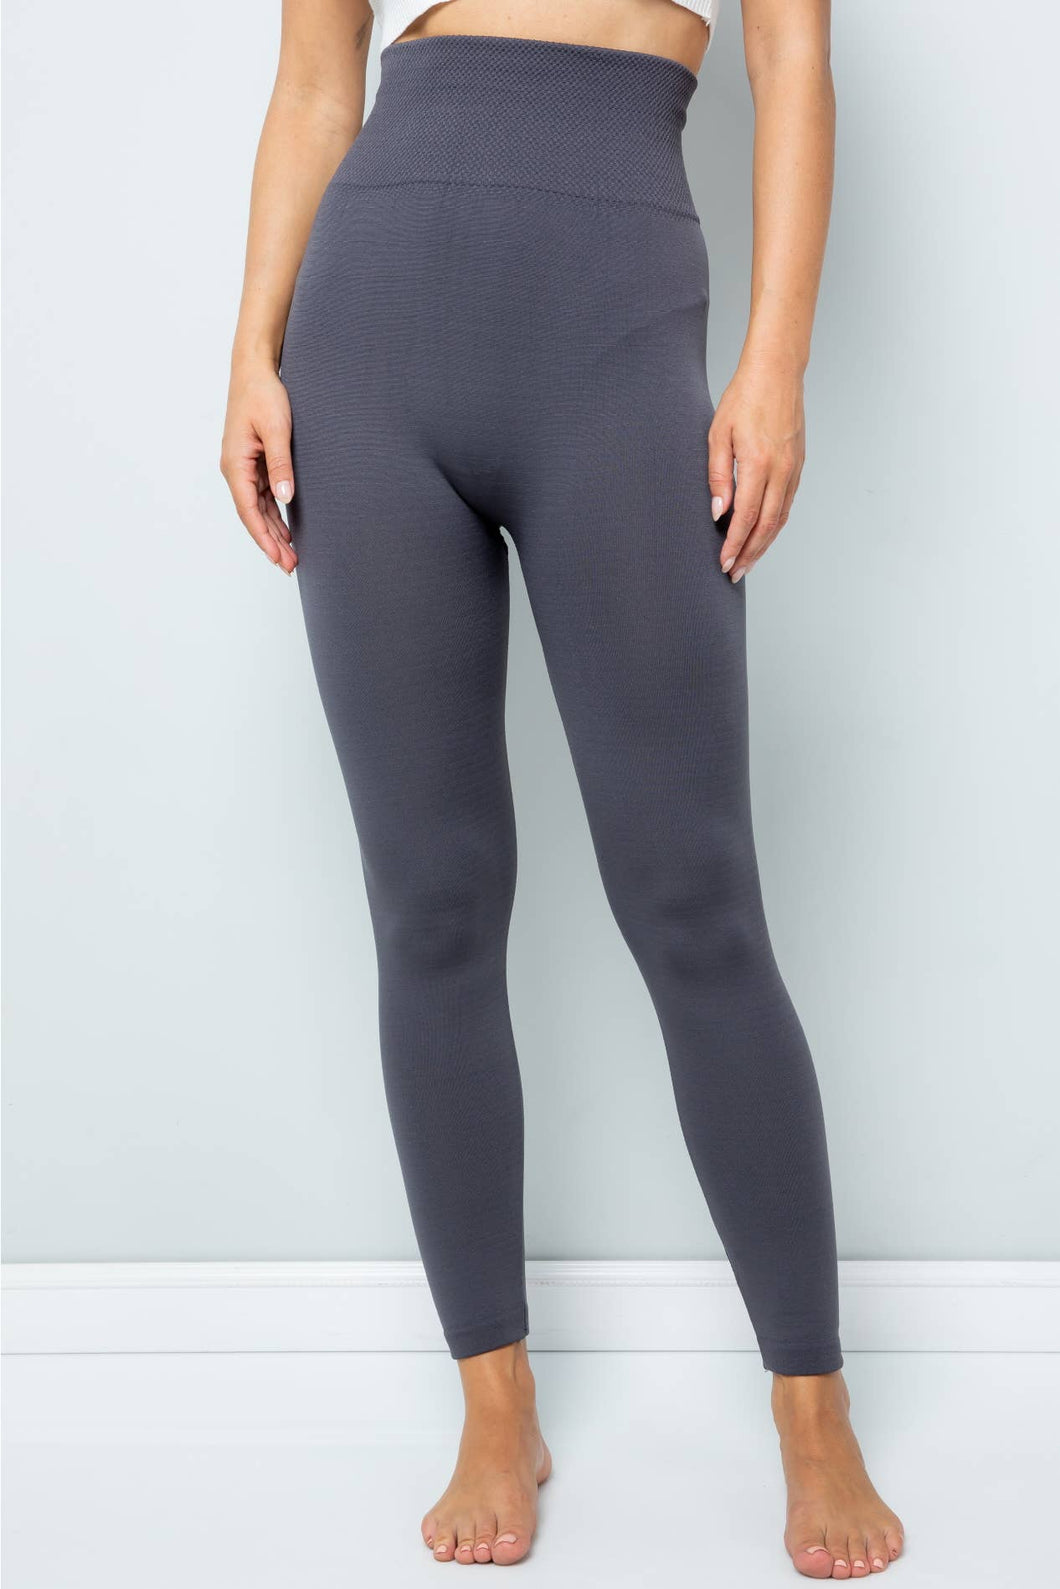 High Waisted Tummy Control Leggings (One Size) Grey